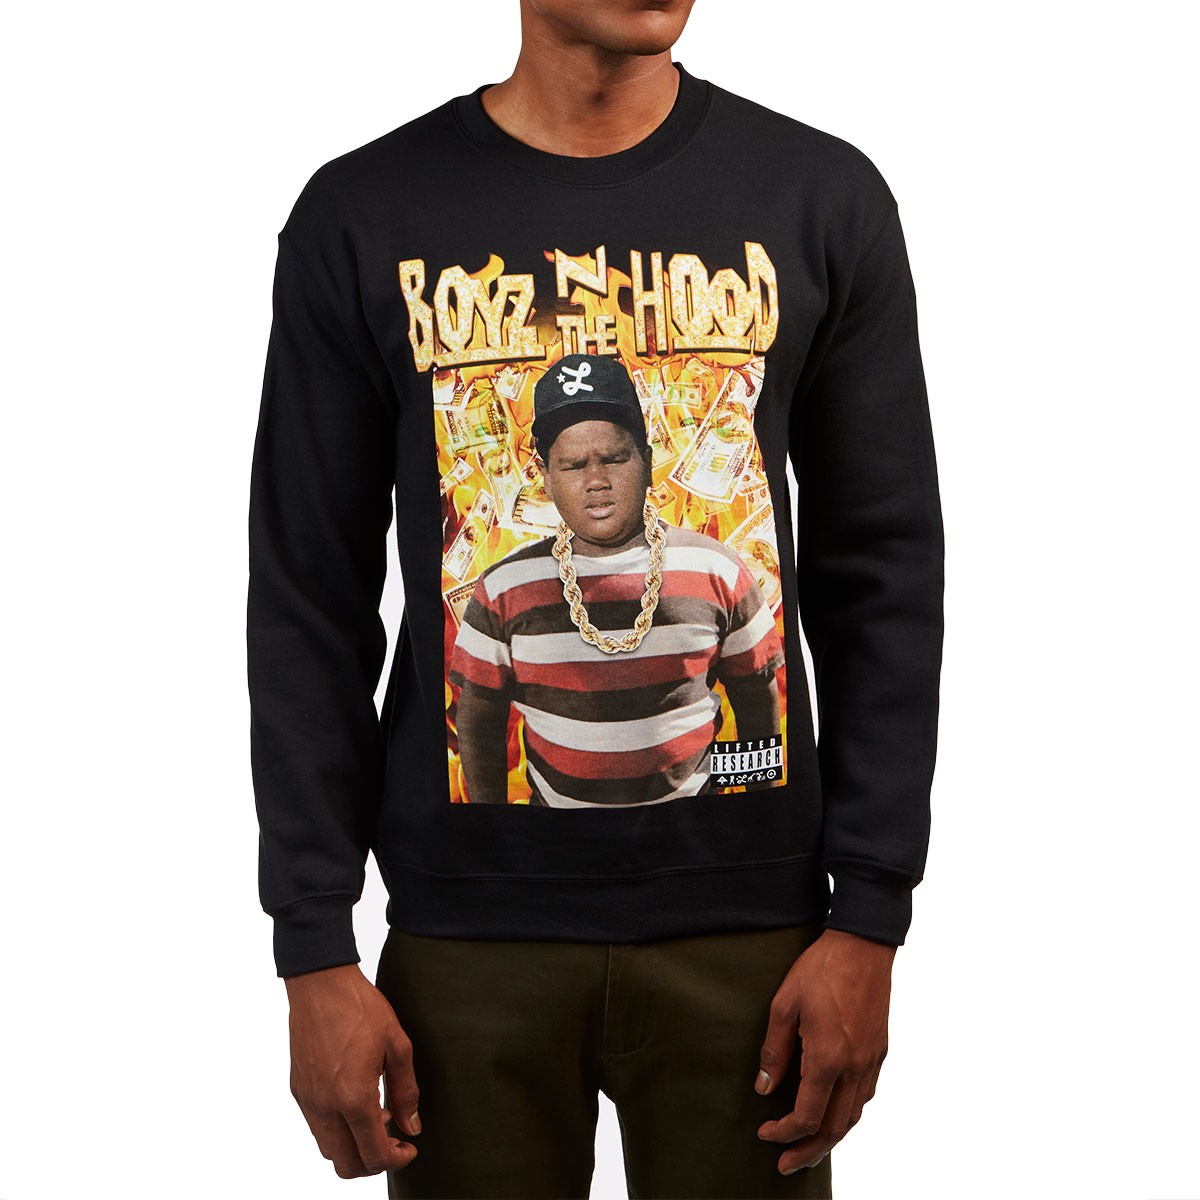 Doughboy clothing store